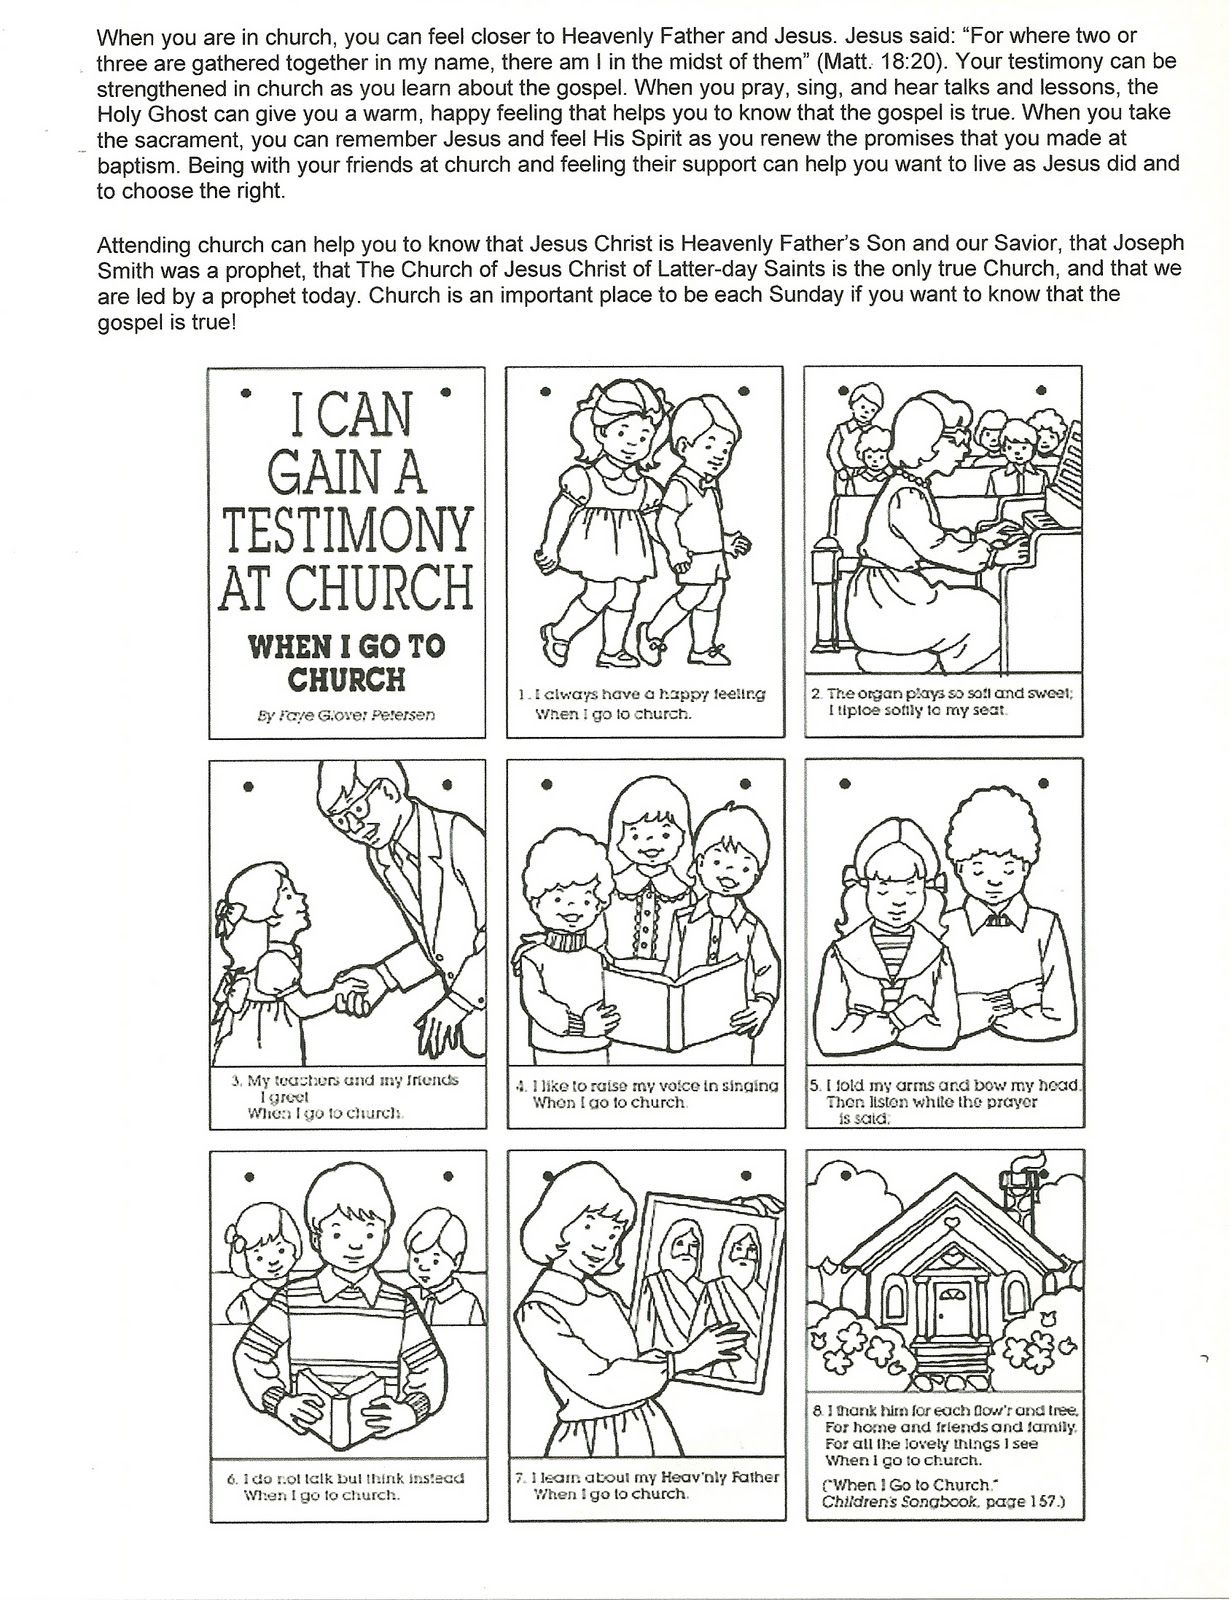 Primary 3 Manual Lesson 40 Worshiping At Church Journal Page Coloring From The Behold Your Little Ones Here